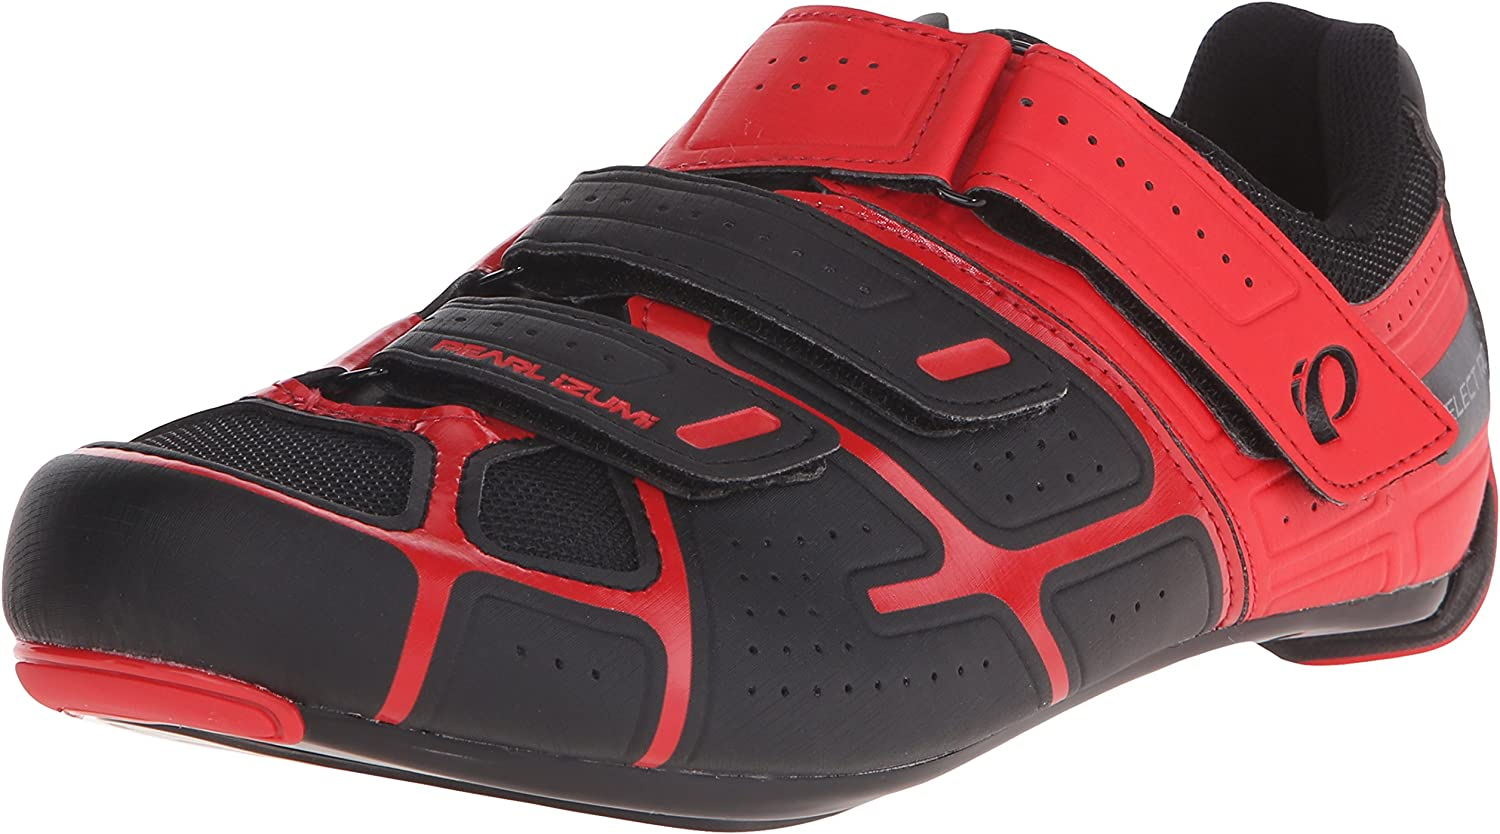 Pearl Izumi Men's Select RD IV Cycling shoes